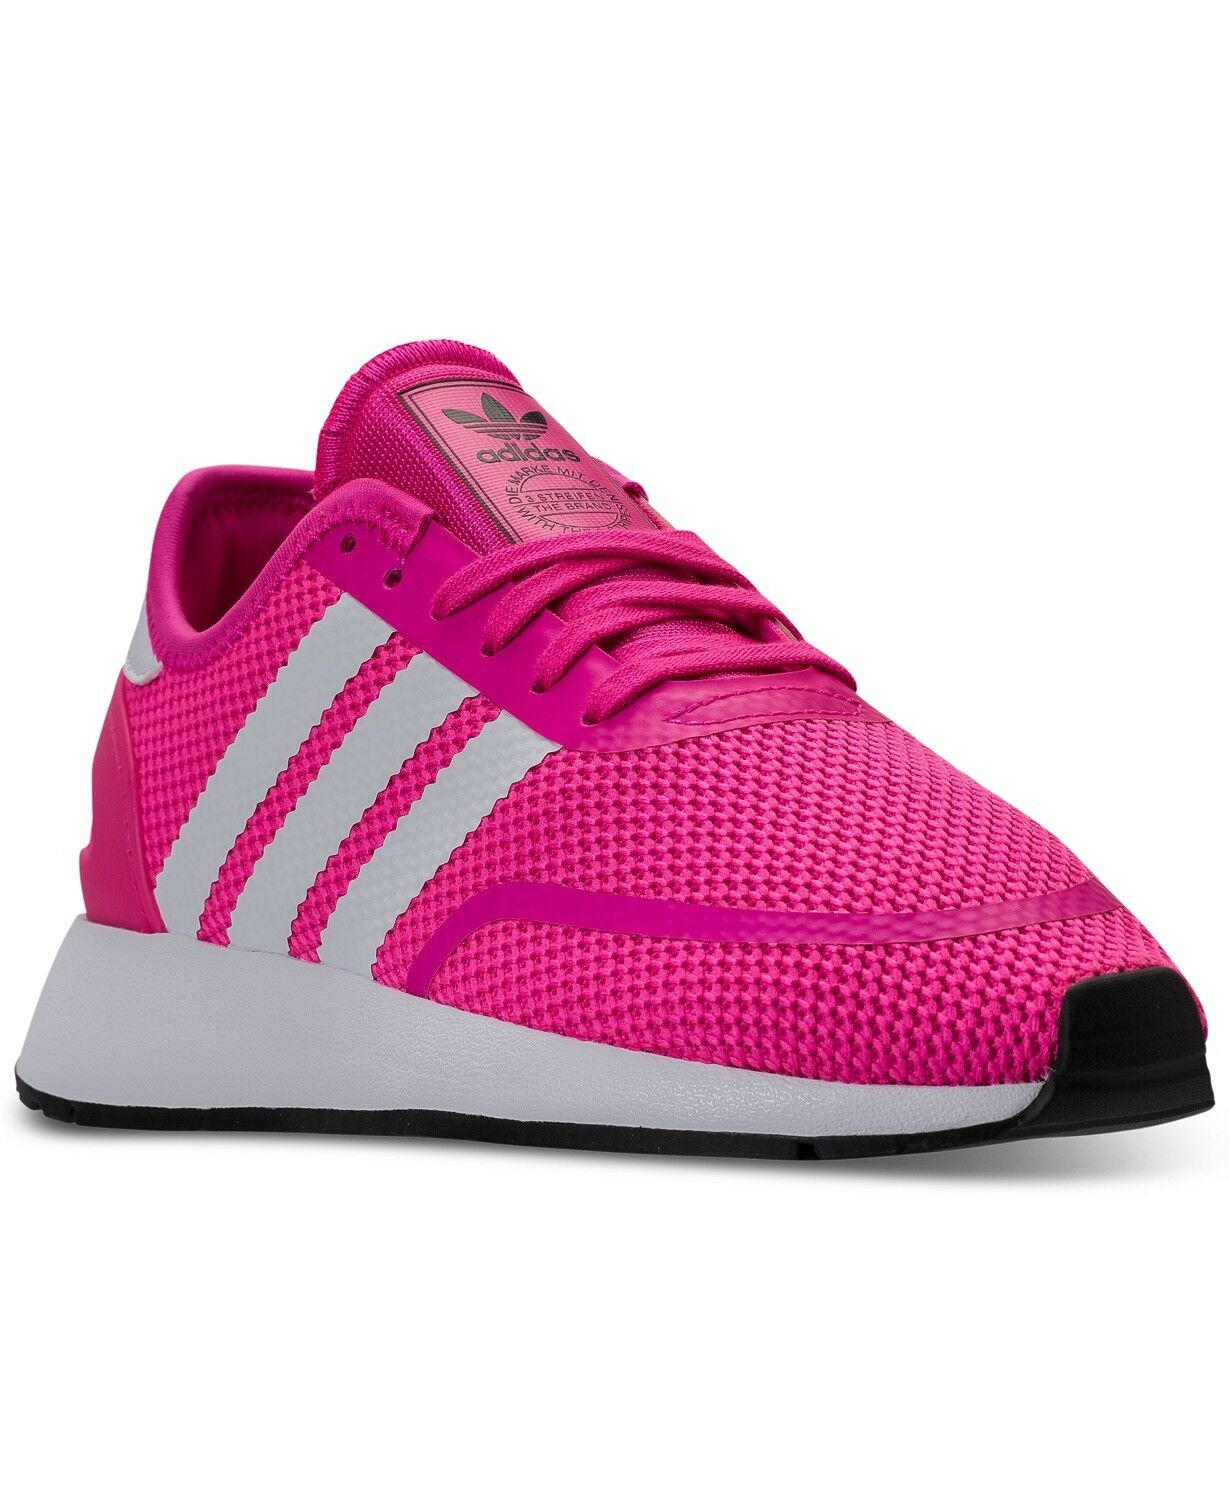 Adidas Girls Pink Pink Pink Casual Sneakers Size 6 Very Nice 884233